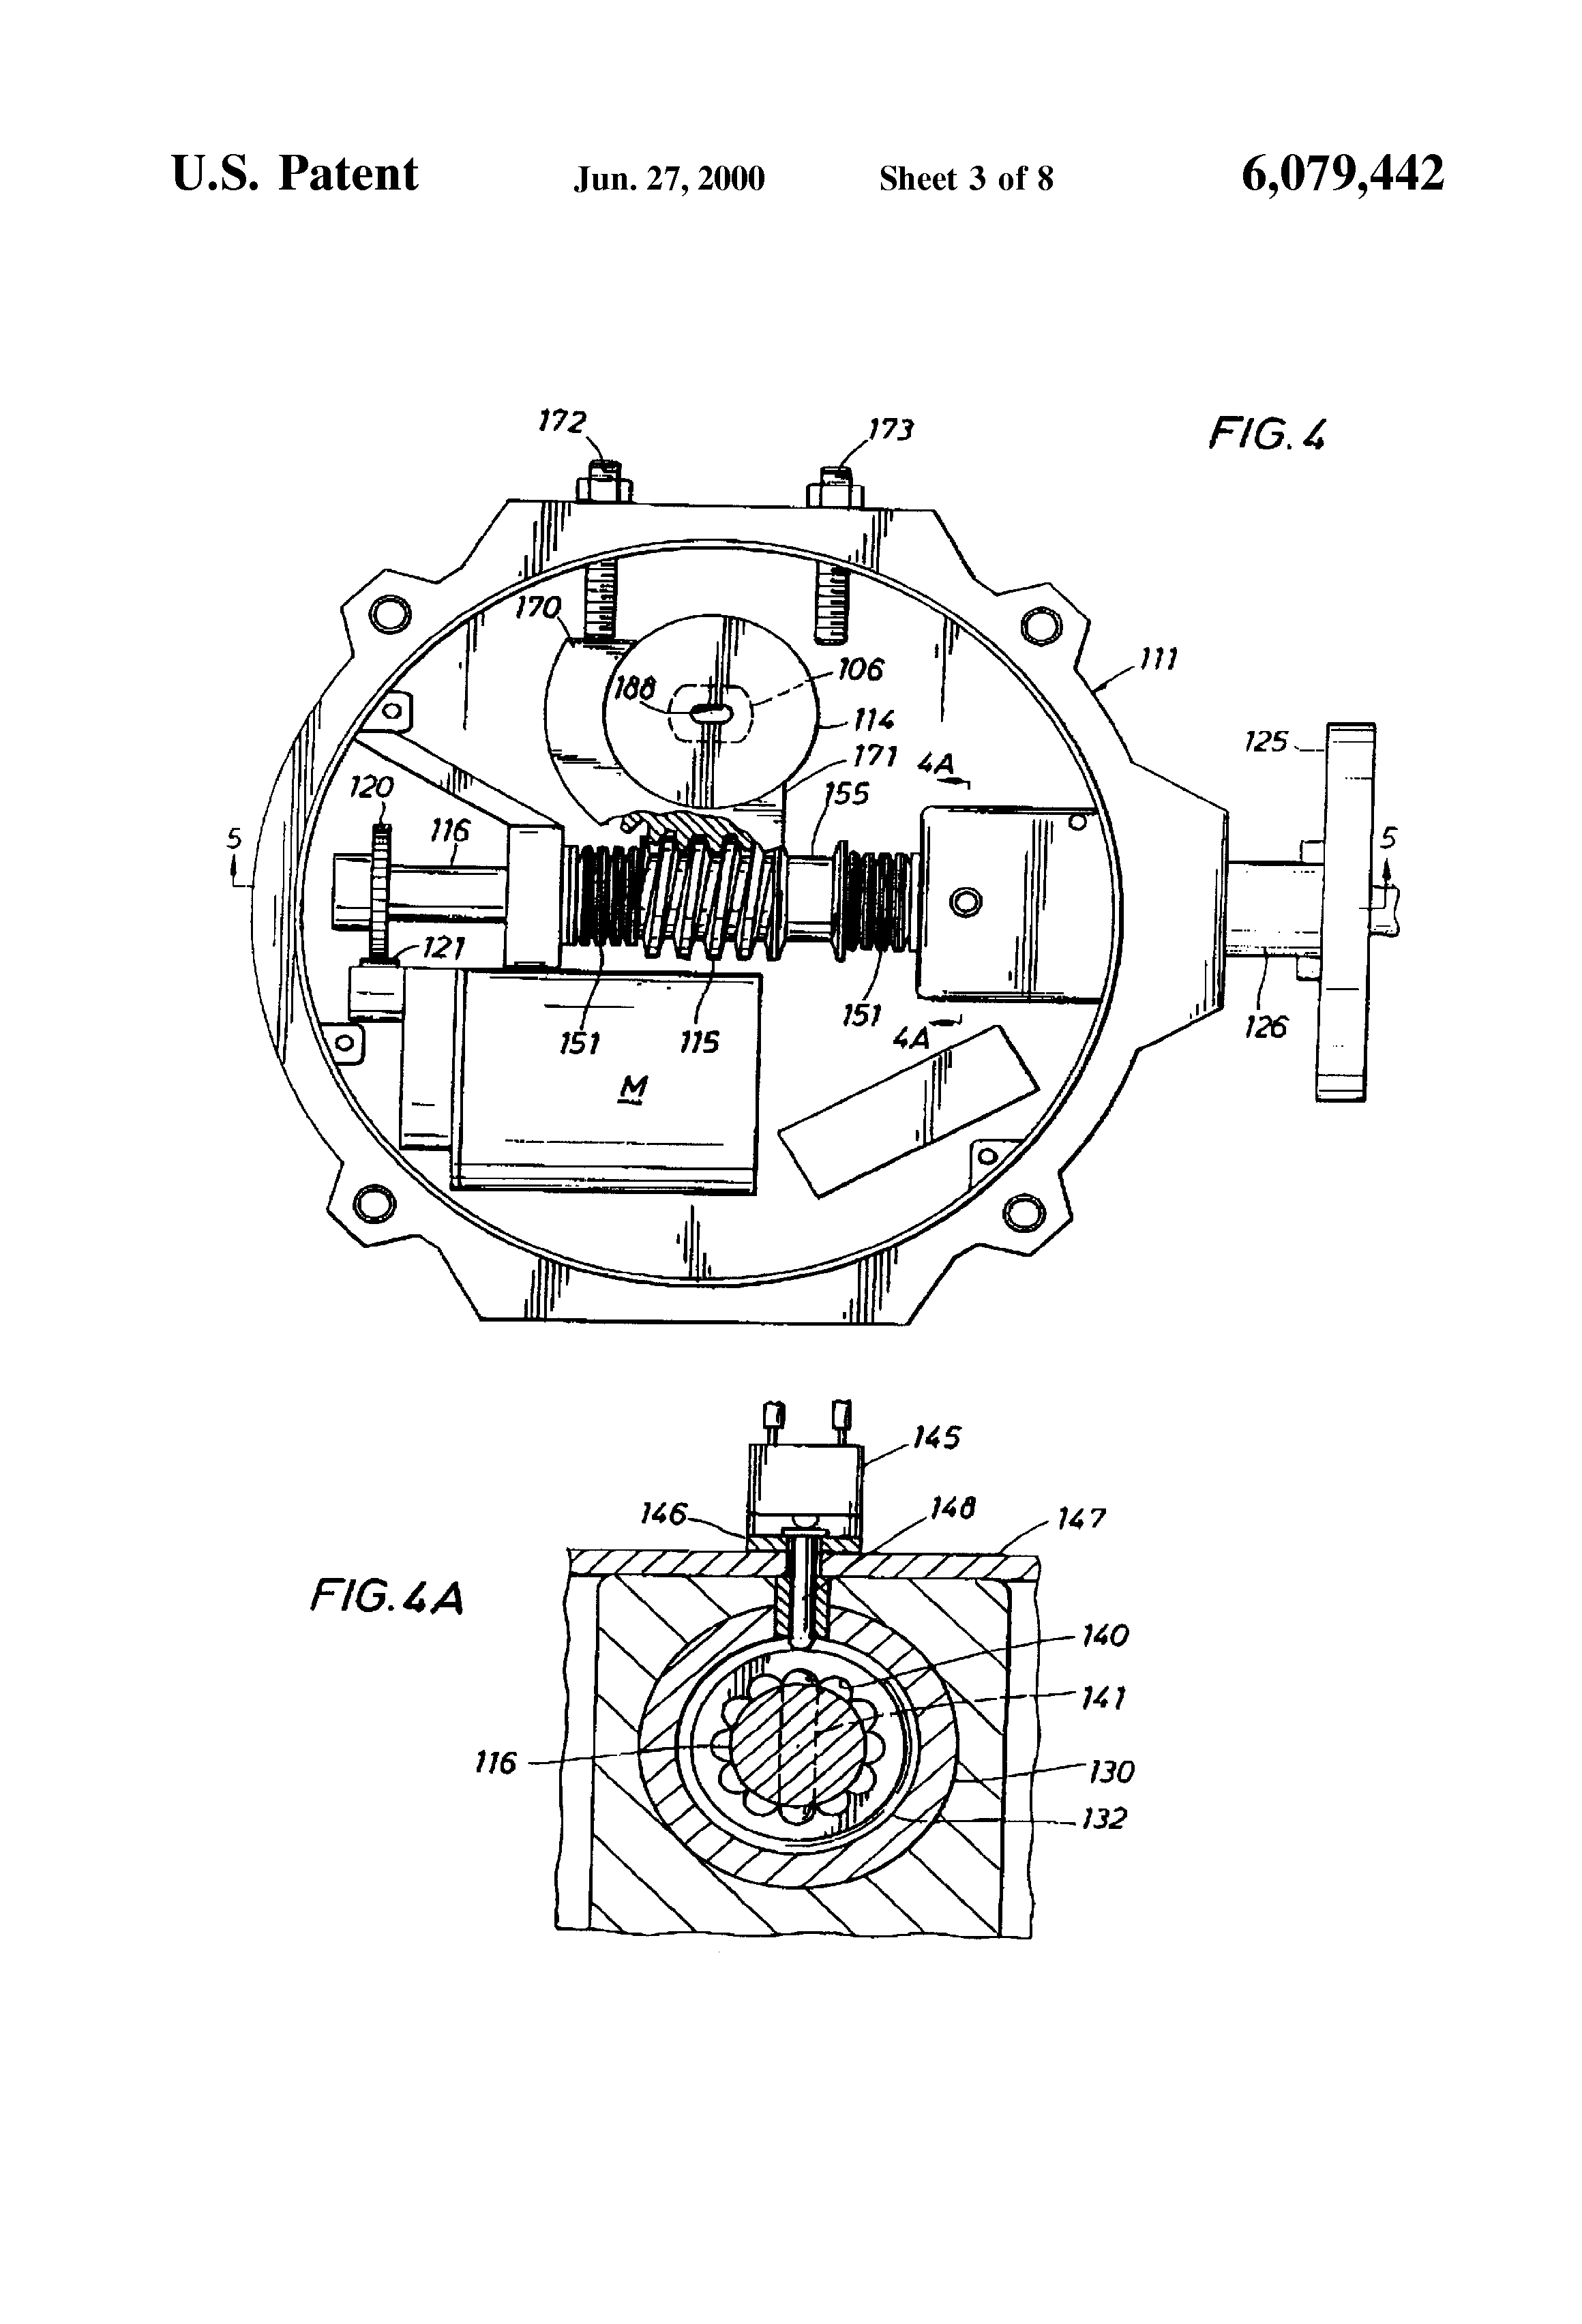 US6079442 3 rotork wiring diagram rotork drawings \u2022 wiring diagrams j squared co rotork actuator wiring diagrams at bayanpartner.co